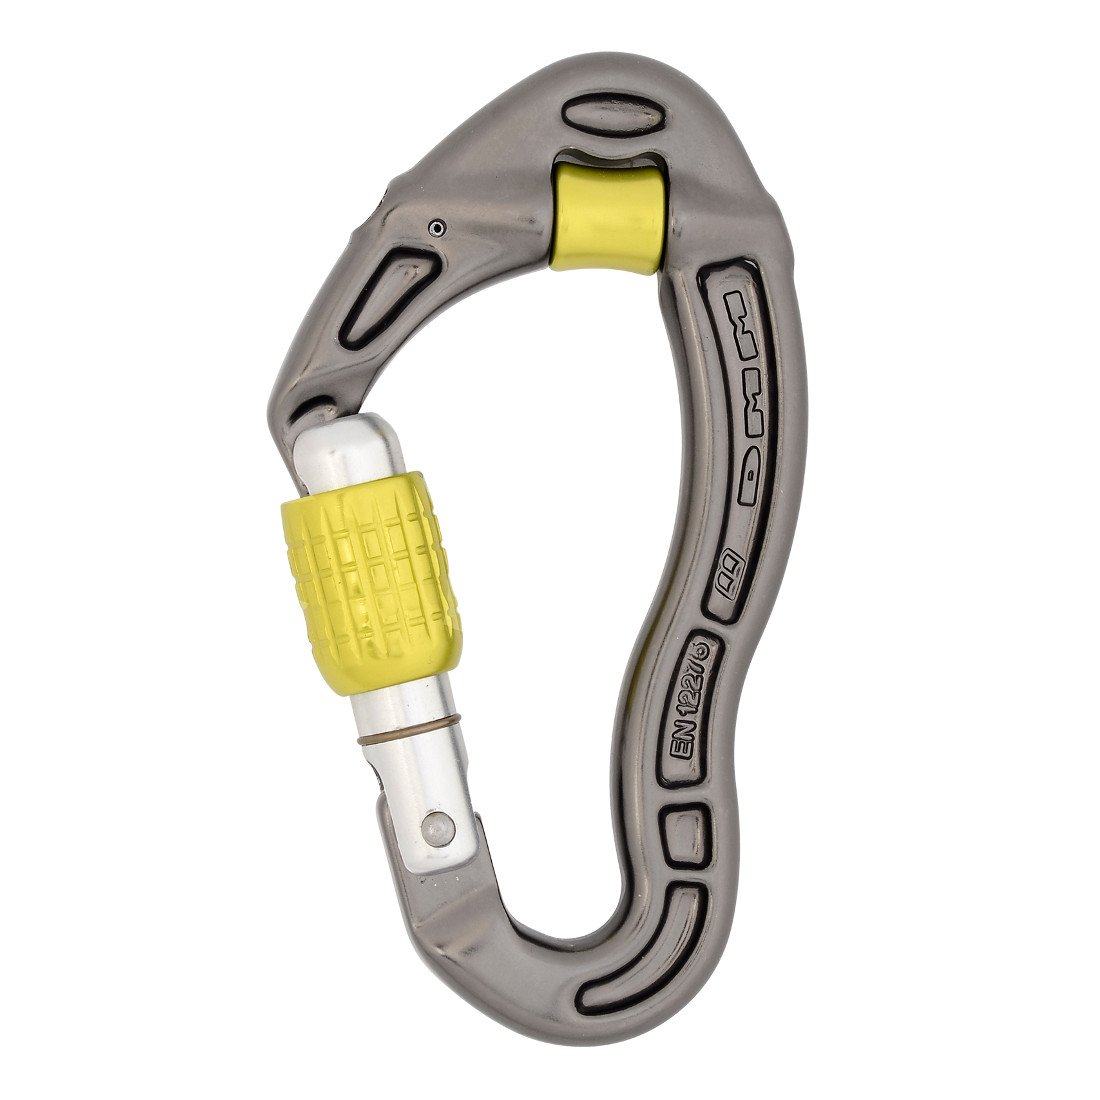 DMM Revolver Screwgate locking climbing carabiner, in gun metal grey with yellow screwlock